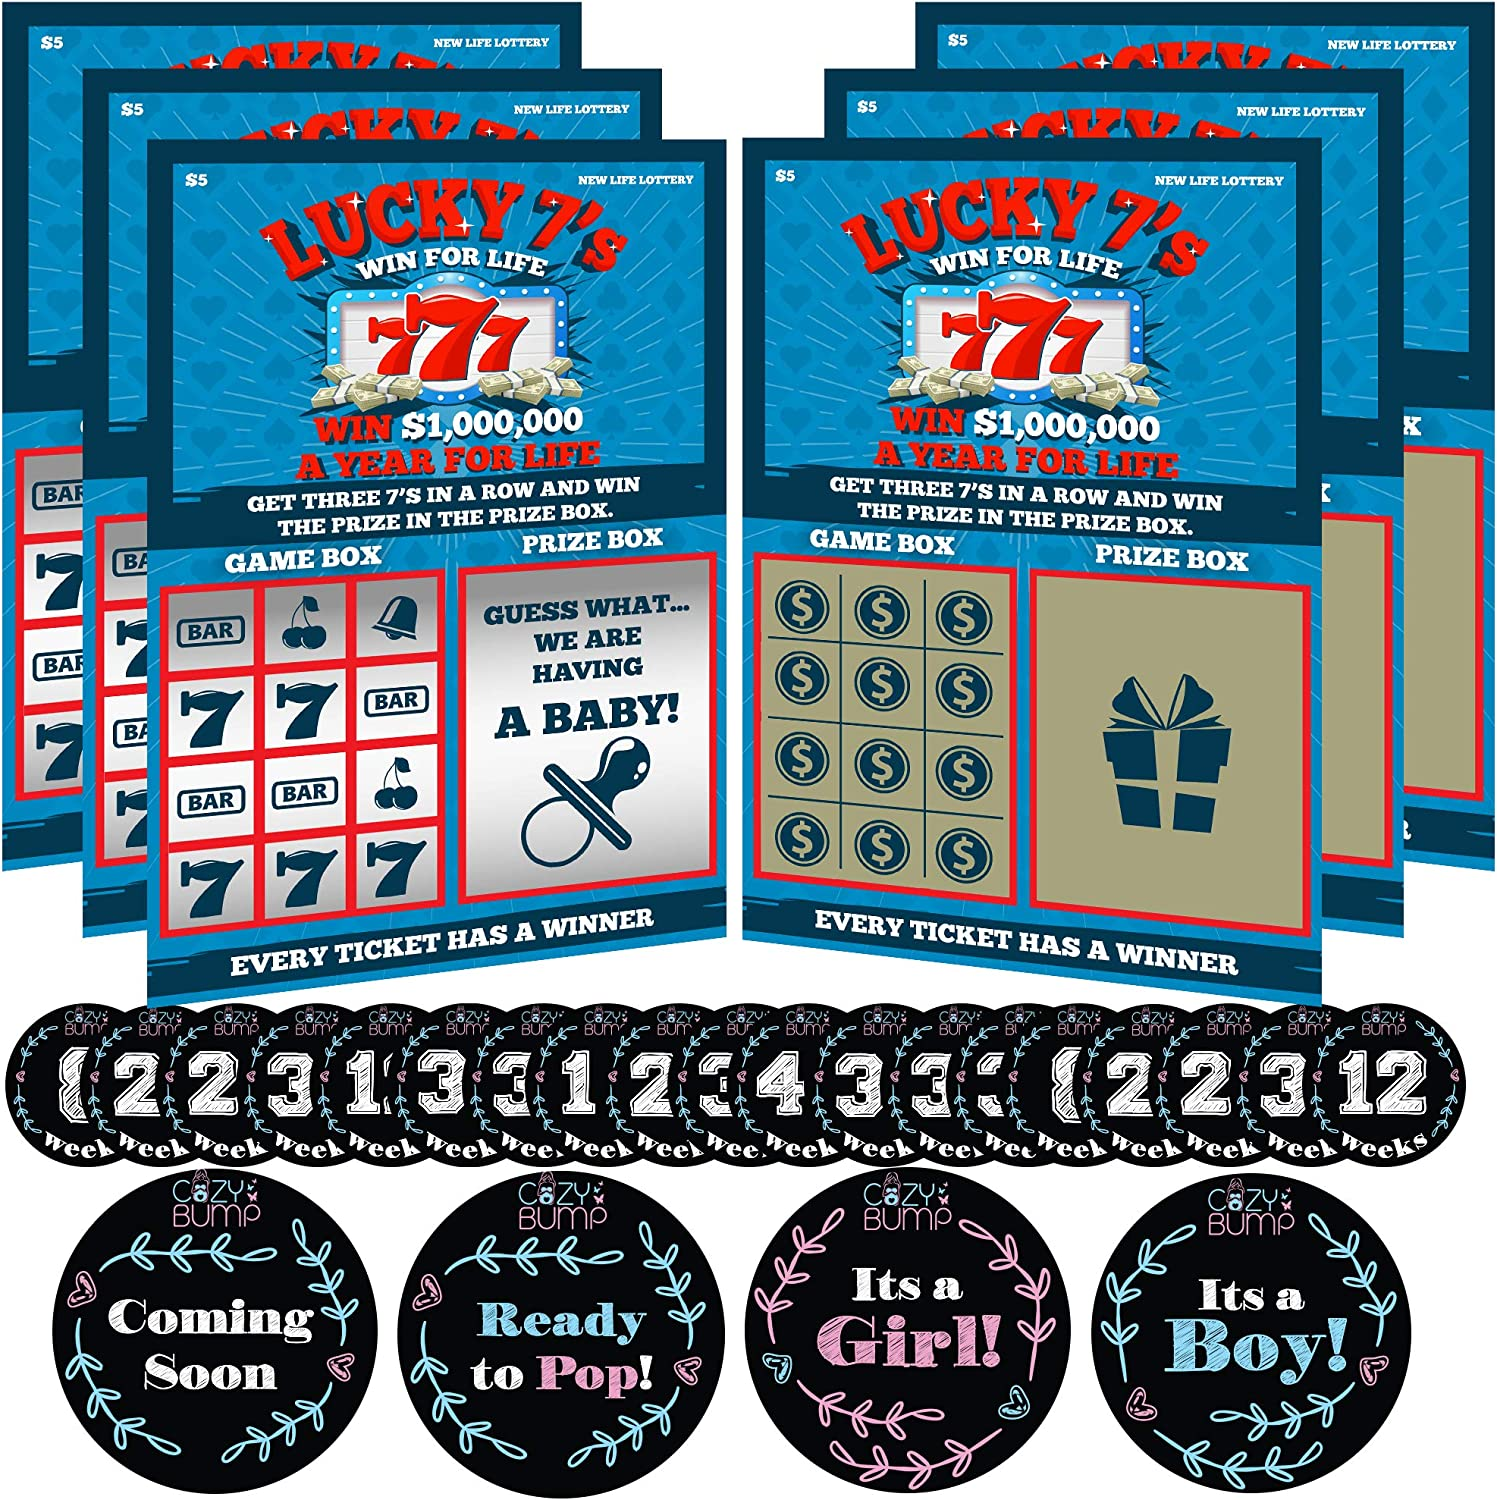 Pregnancy Announcement Scratch Off Cards for Baby Announcement - 6 Pregnancy Scratch Offs Included - Comes with Pregnancy Stickers